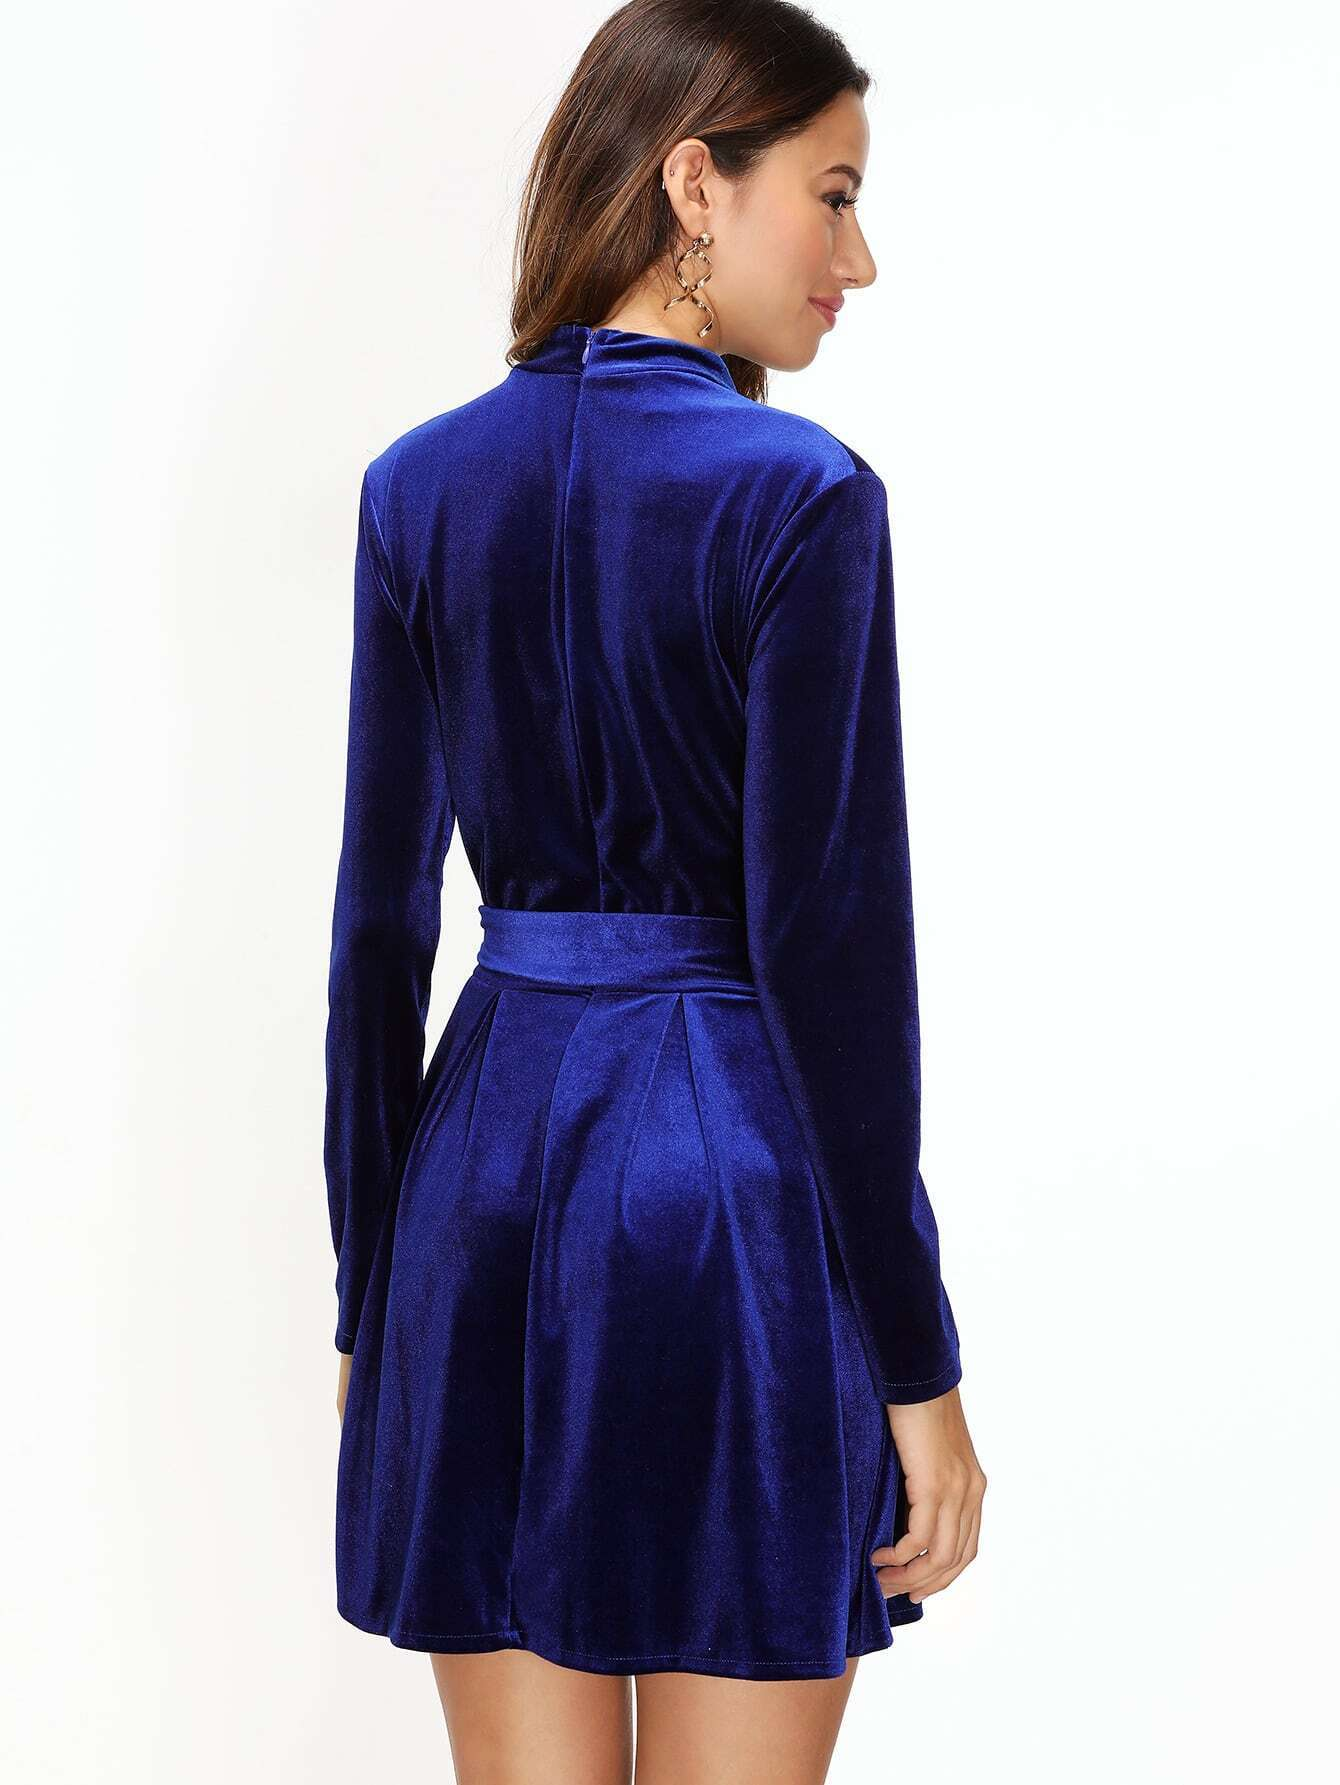 royal blue velvet choker neck zip back dress with belt. Black Bedroom Furniture Sets. Home Design Ideas